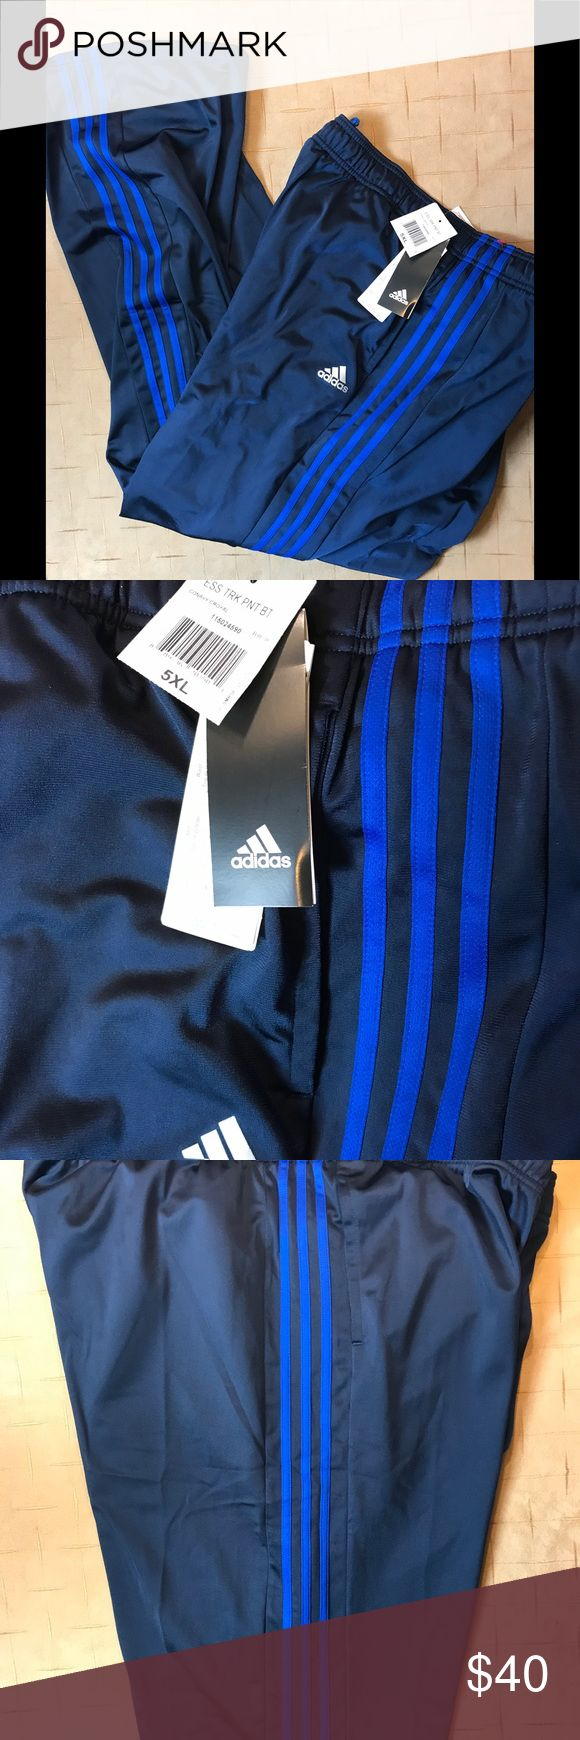 Adidas NWTS athletic pants size 5X Big and Tall 5XL Adidas Mens Athletic Pants NWT adidas Pants Sweatpants & Joggers